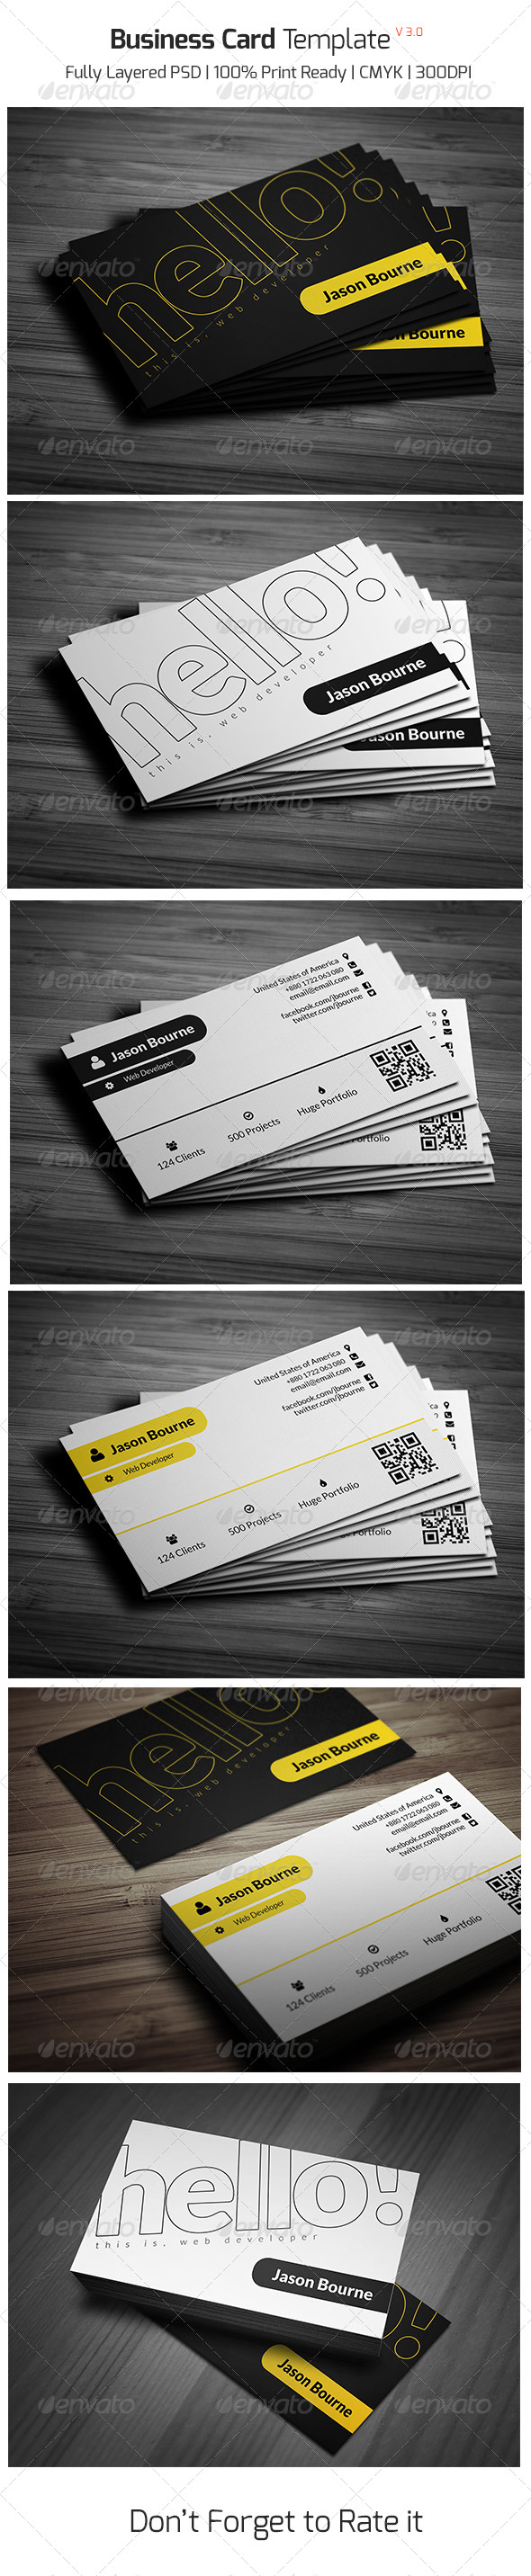 GraphicRiver Business Card Template v 3.0 8020706